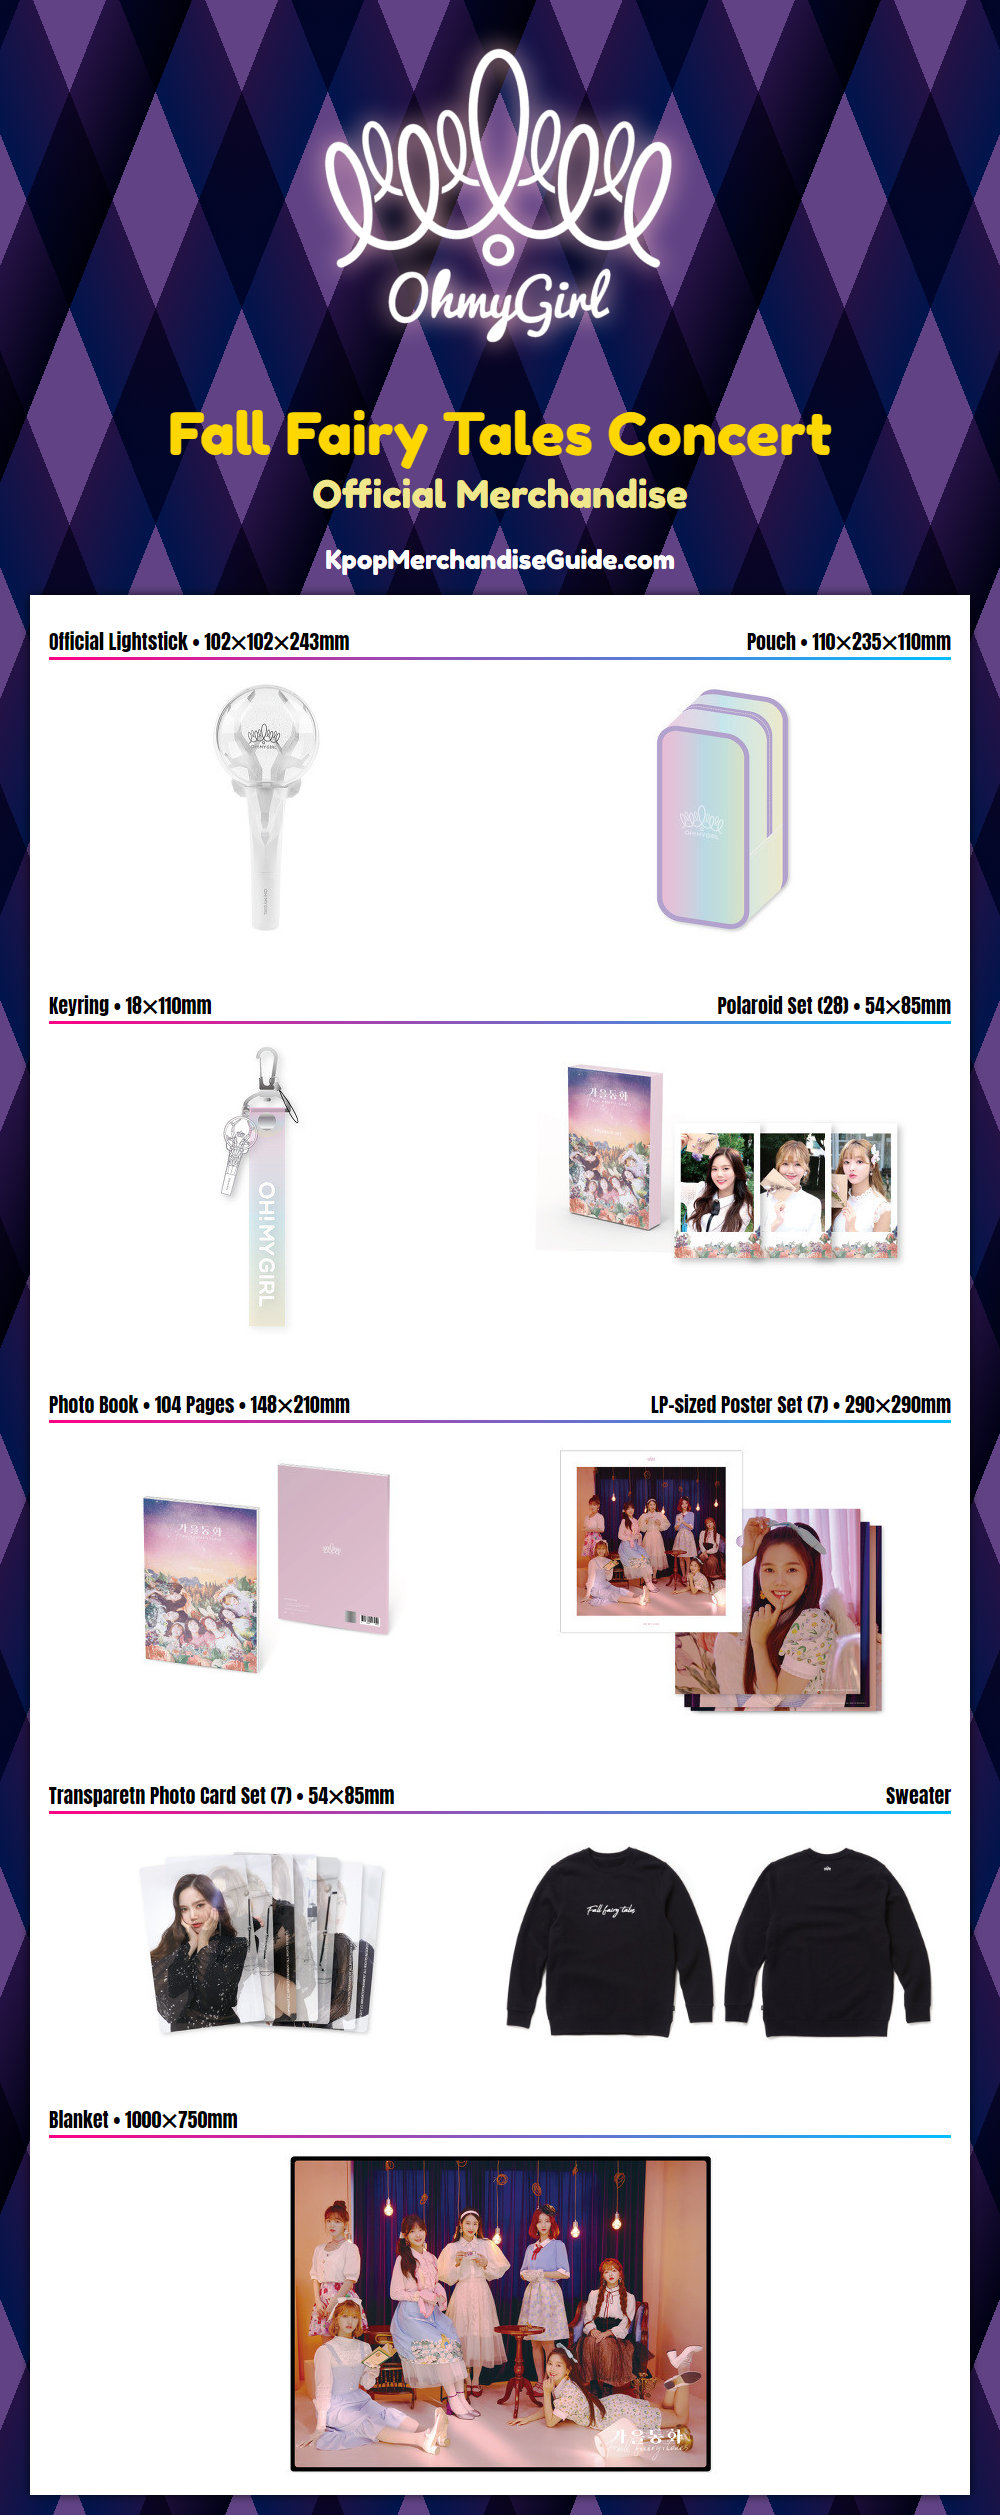 Oh My Girl Fall Fairy Tales Concert Merchandise